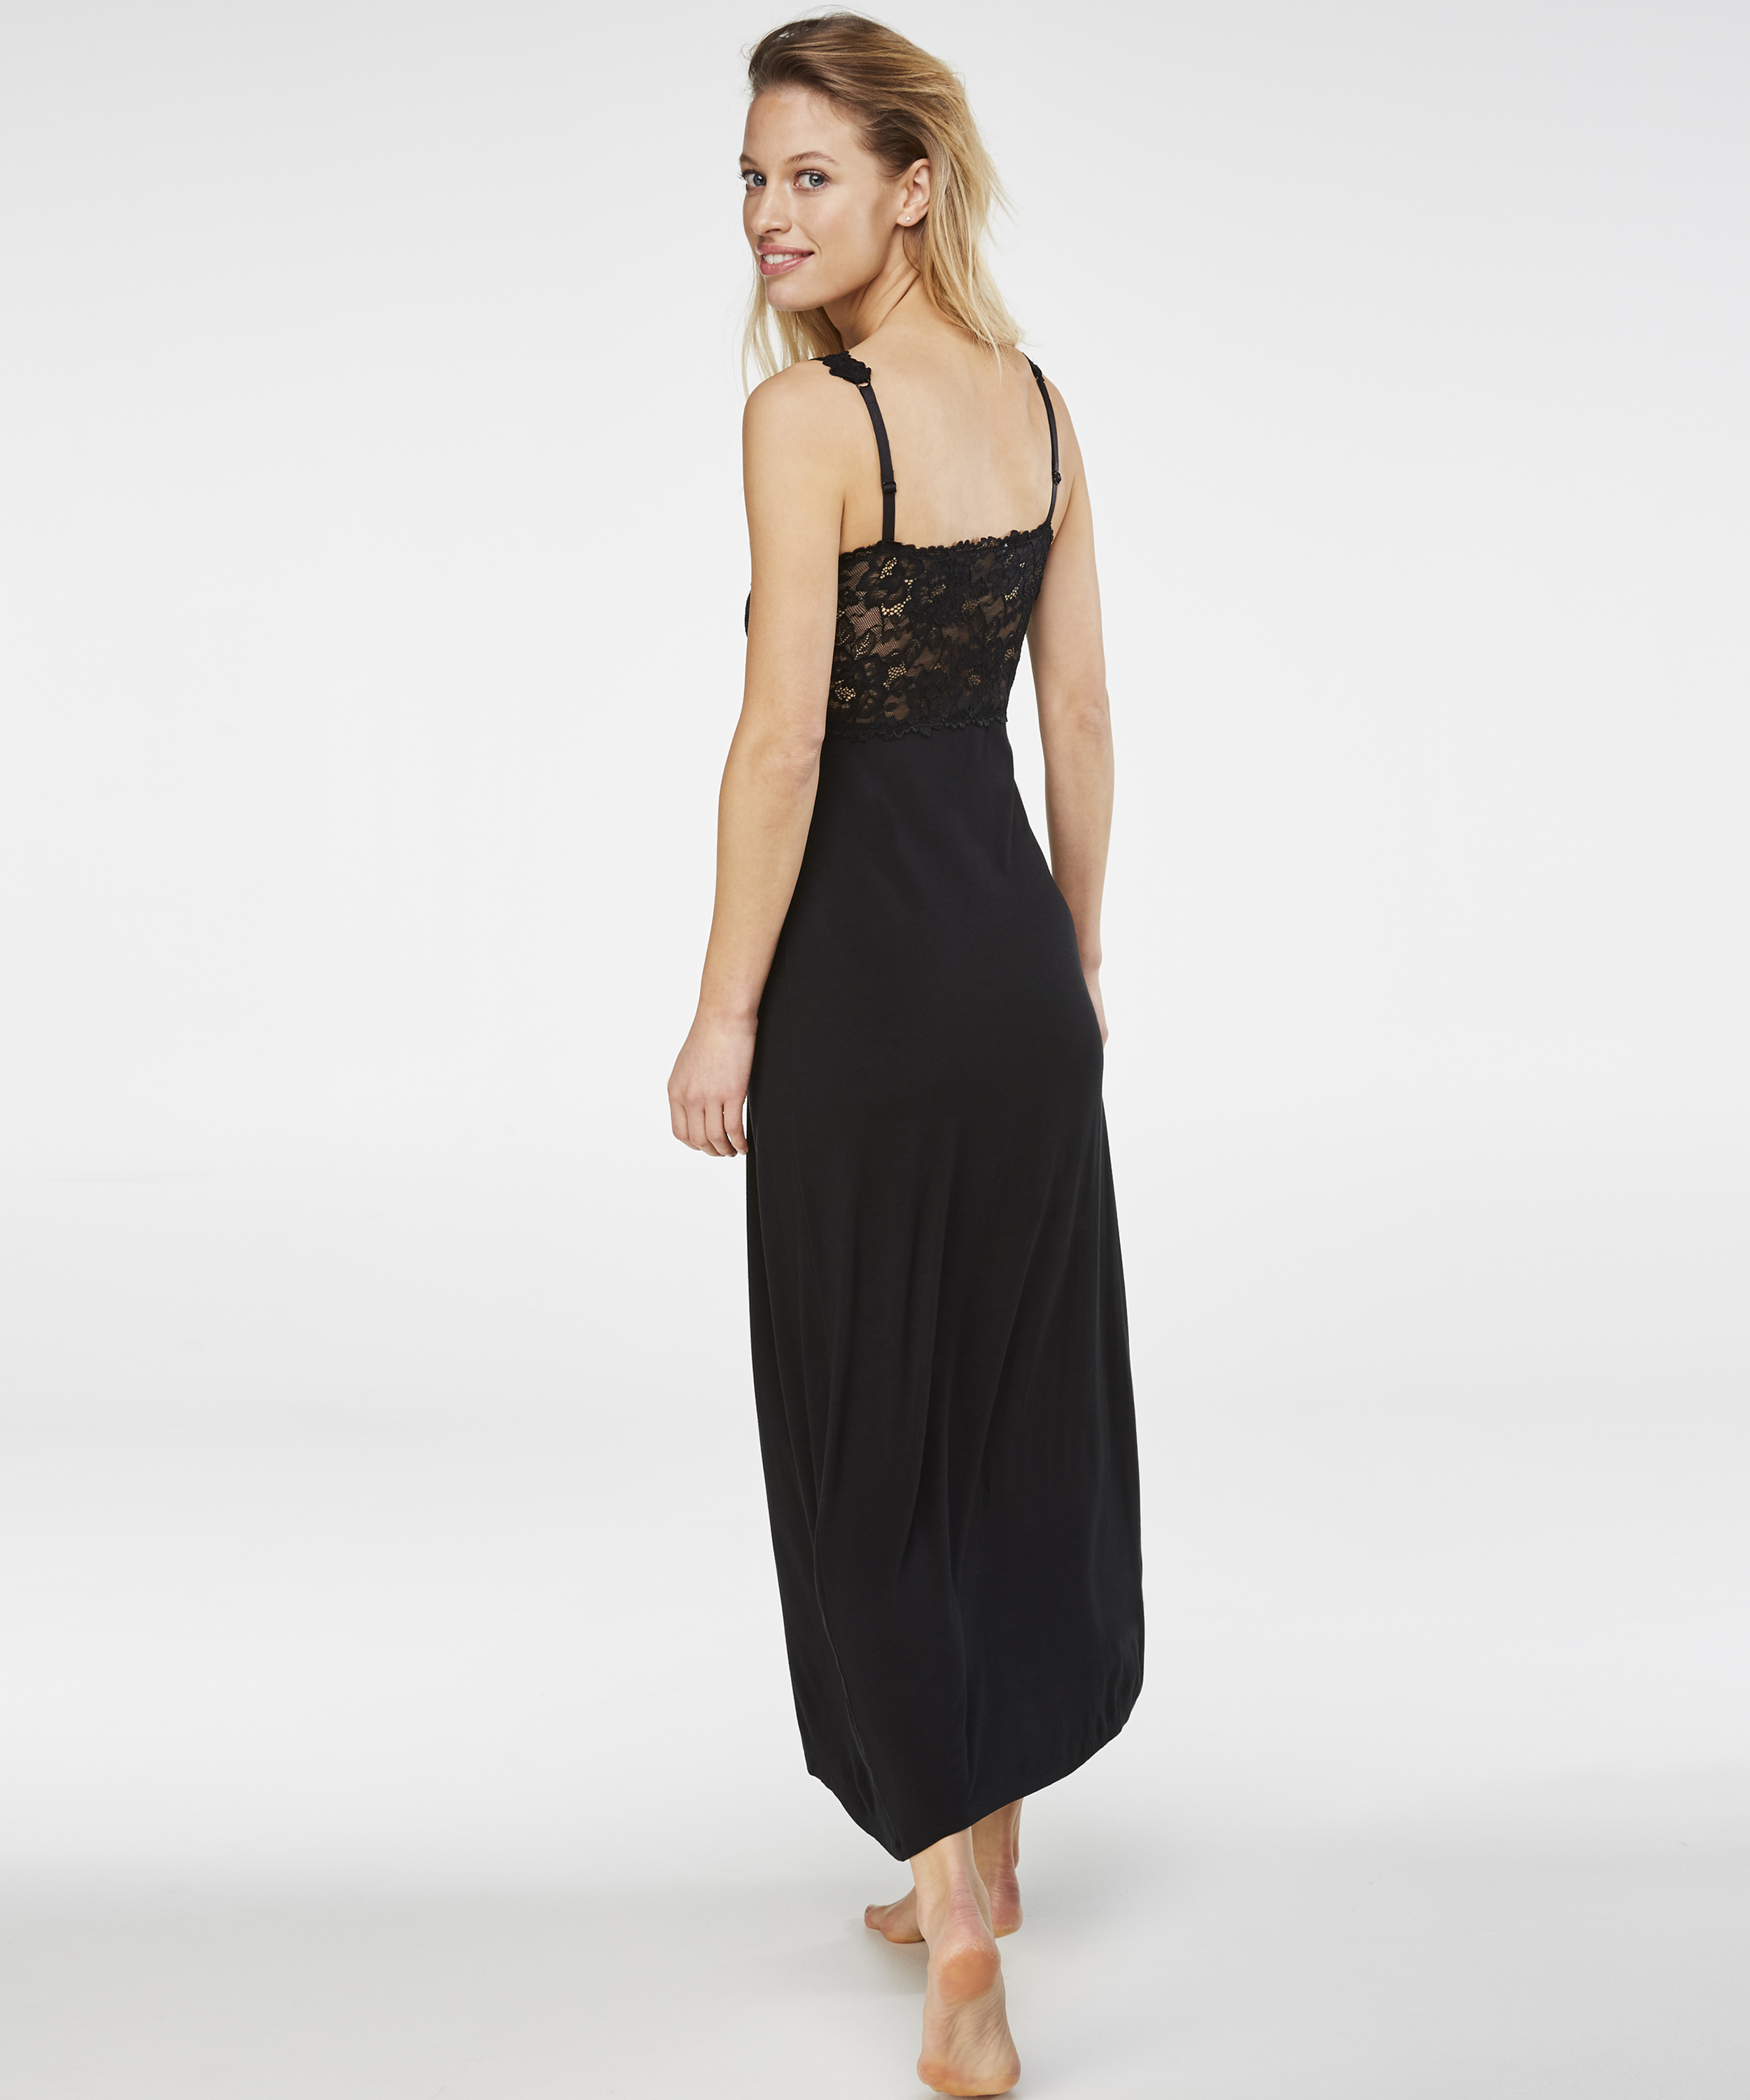 Lange slip dress Modal Lace, Zwart, main